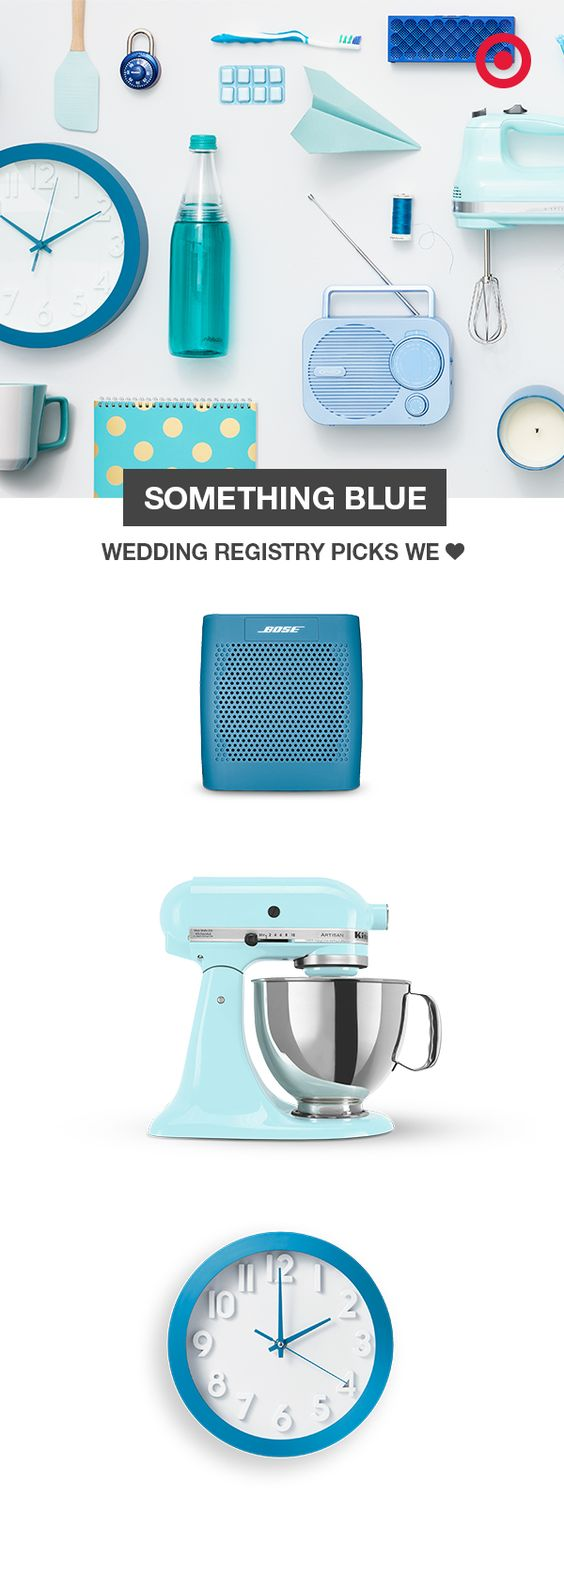 """""""Something blue"""" isn't just for your wedding day. Add your favorite shades of blue to your wedding registry with must-haves like wireless speakers, a KitchenAid stand mixer, wall clocks and radios. Besides, blue is a super easy color to decorate with, and it creates a clean and calm atmosphere."""